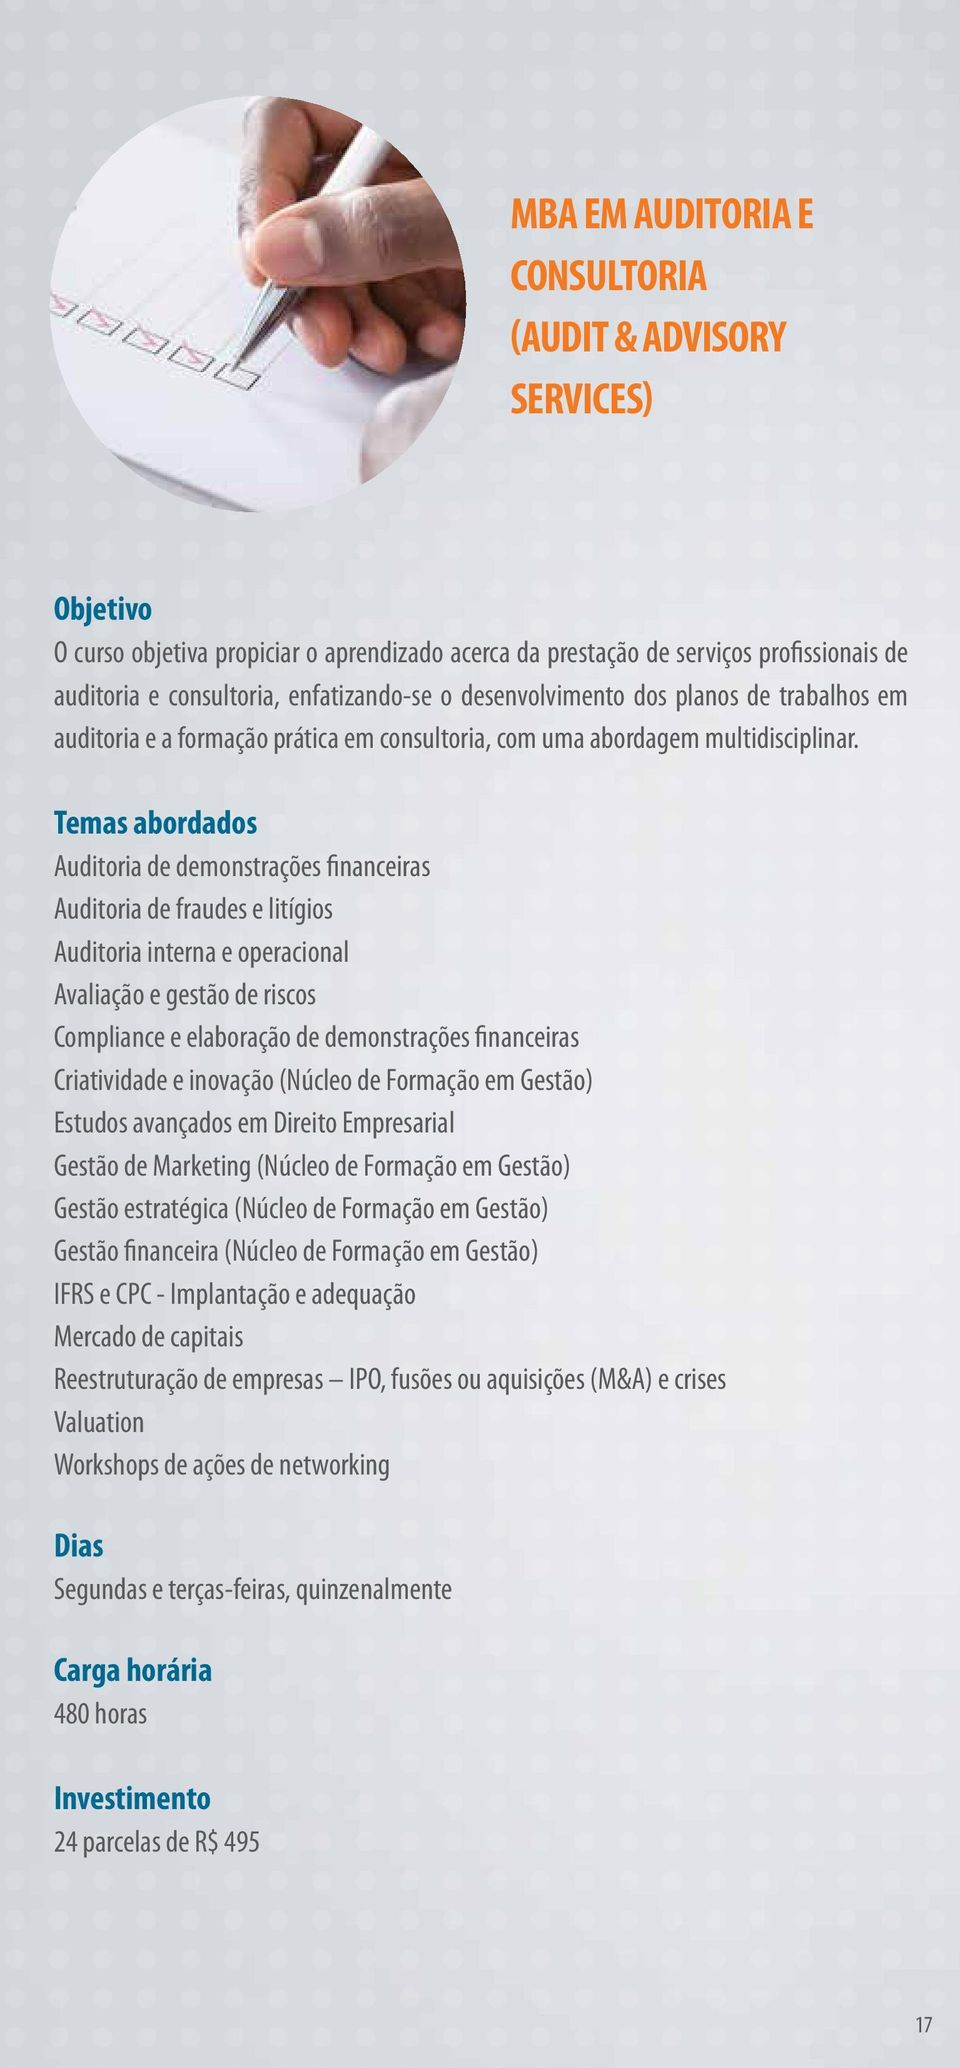 Auditoria de demonstrações financeiras Auditoria de fraudes e litígios Auditoria interna e operacional Avaliação e gestão de riscos Compliance e elaboração de demonstrações financeiras Criatividade e